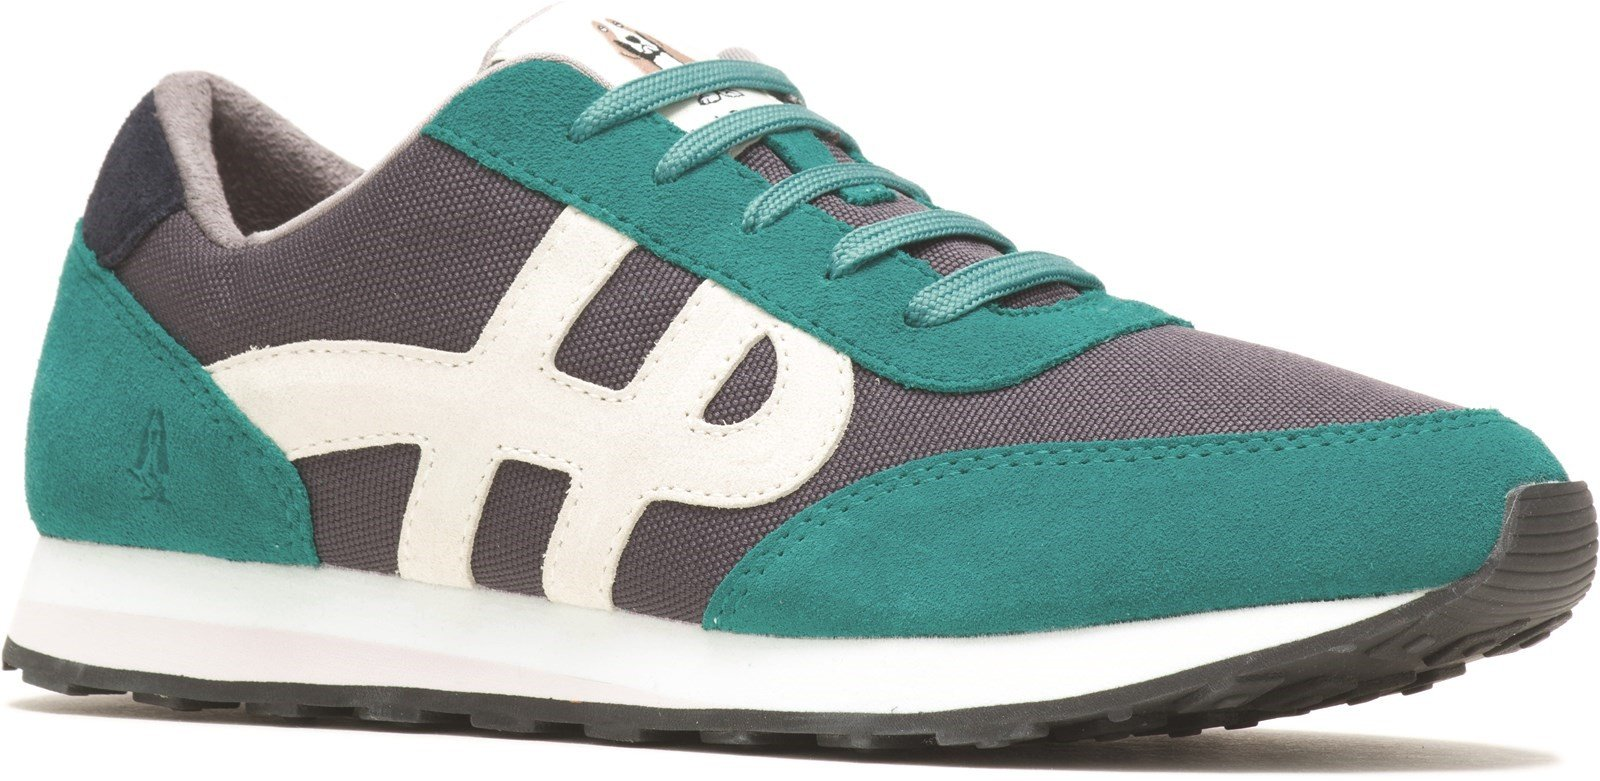 Hush Puppies Women's Seventy8 Lace Trainer Various Colours 31298 - Navy Multi 3